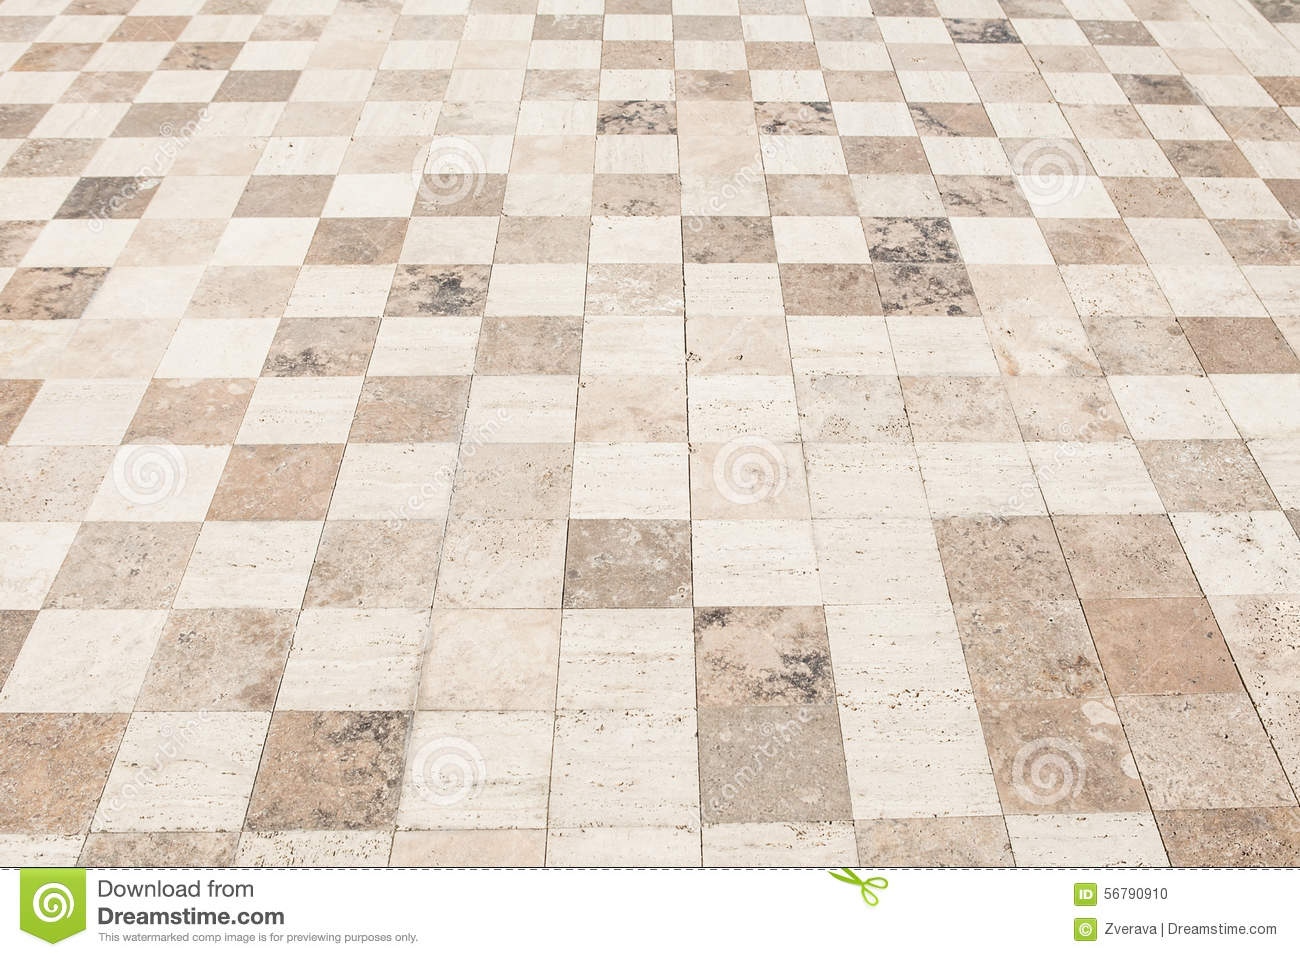 Rough textured stone tiles exterior walkway stock photo for Exterior floor tiles texture